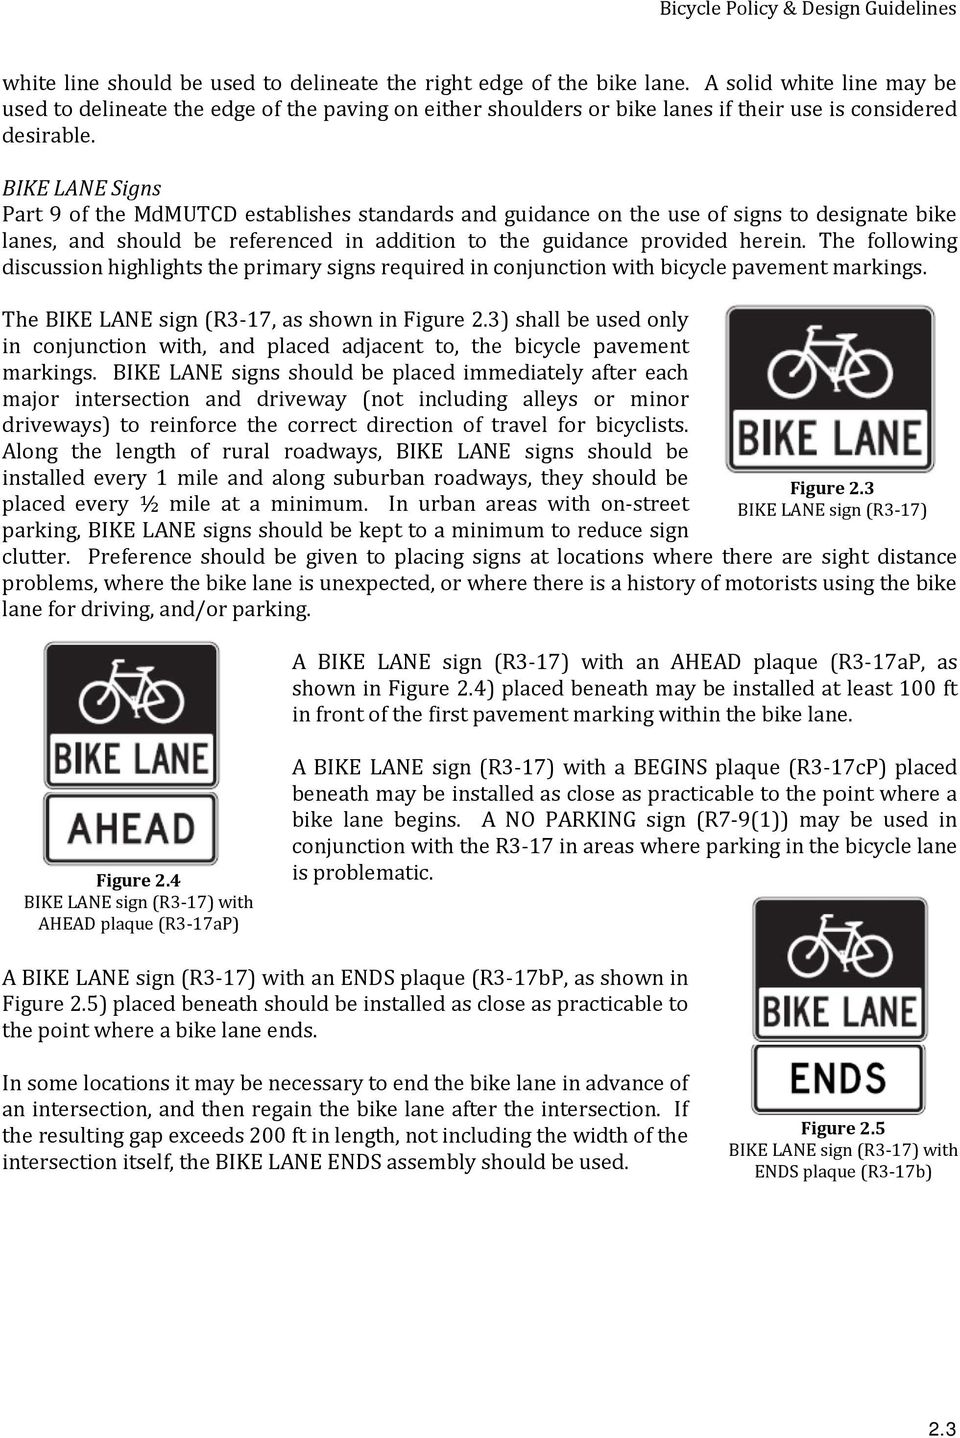 BIKE LANE Signs Part 9 of the MdMUTCD establishes standards and guidance on the use of signs to designate bike lanes, and should be referenced in addition to the guidance provided herein.